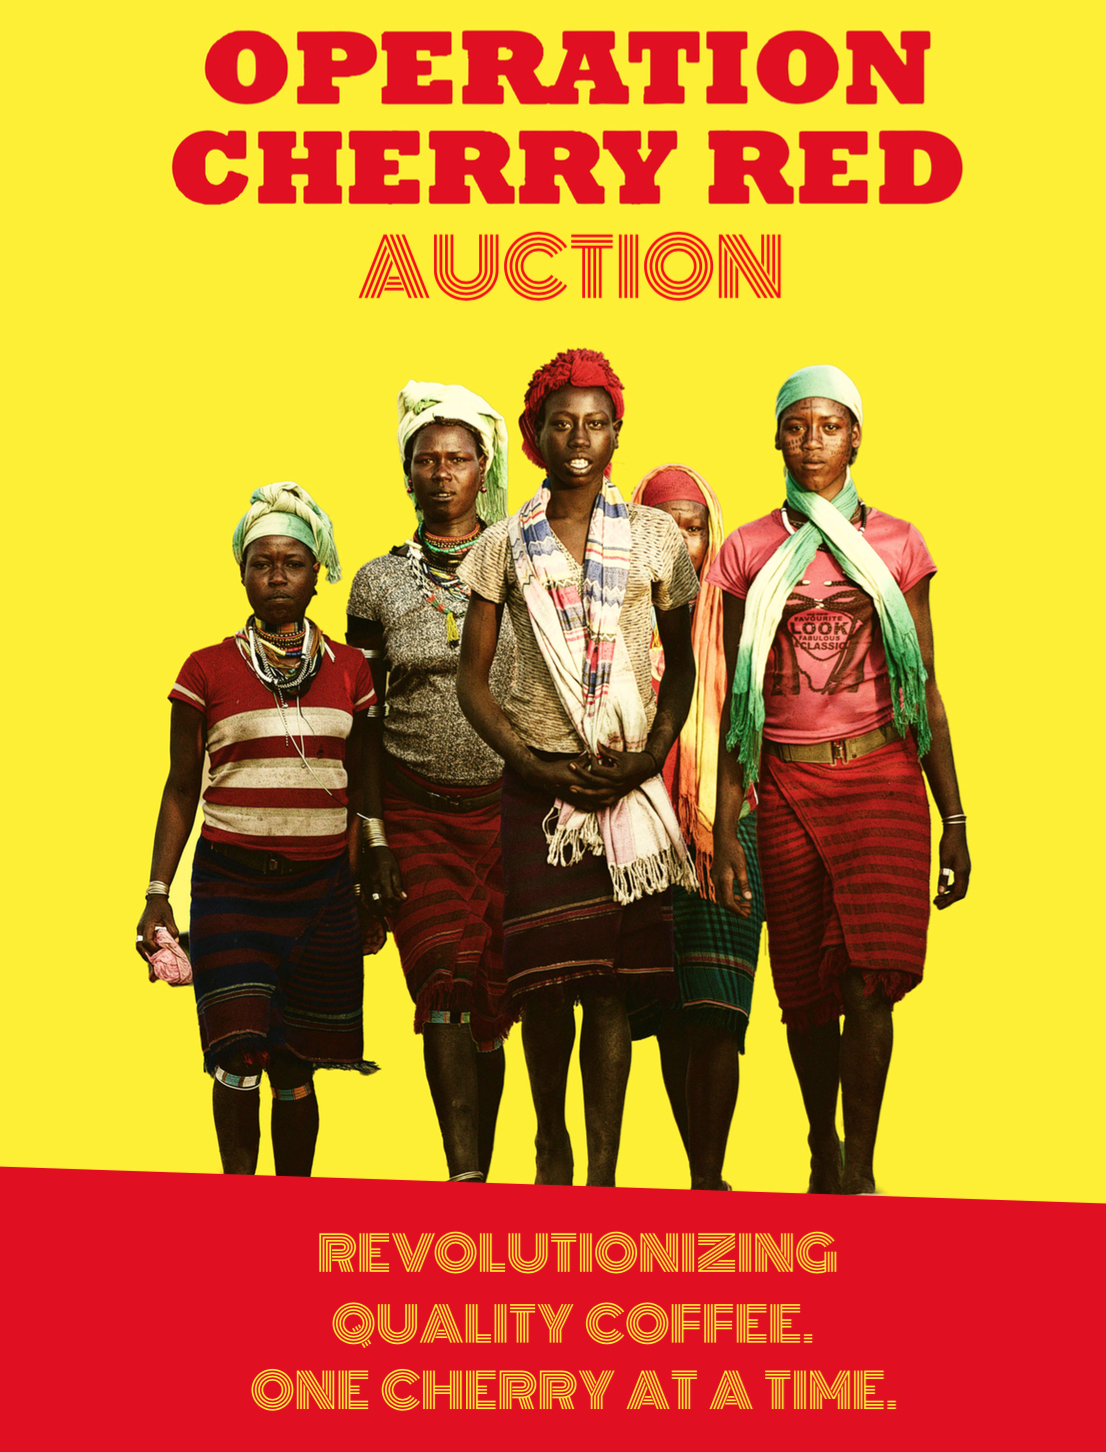 Operation Cherry Red coffee auction ethiopia trabocca